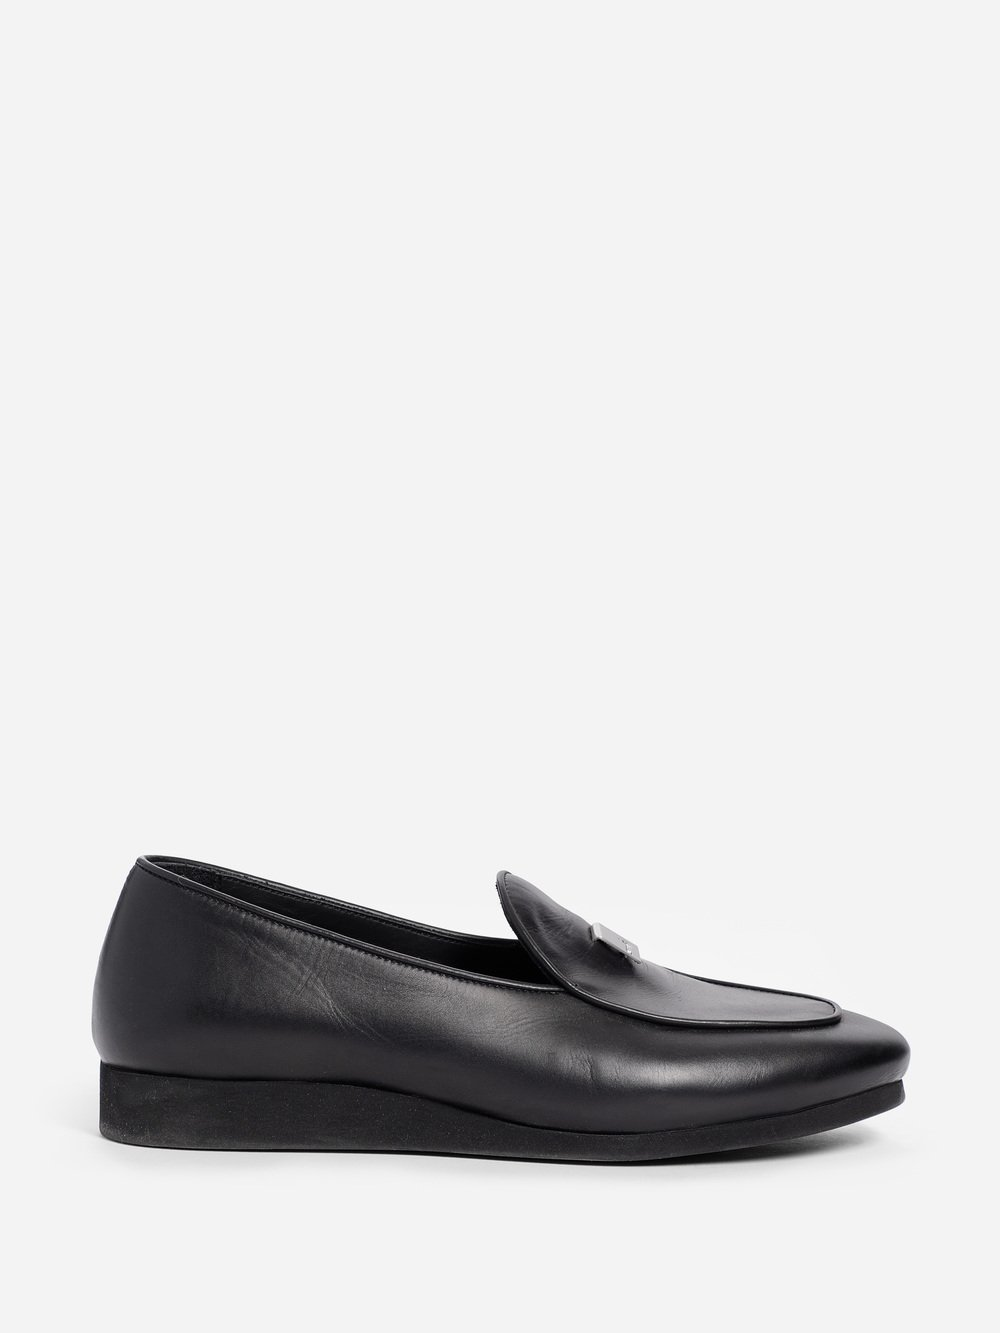 1017 Alyx 9 Sm Loafers